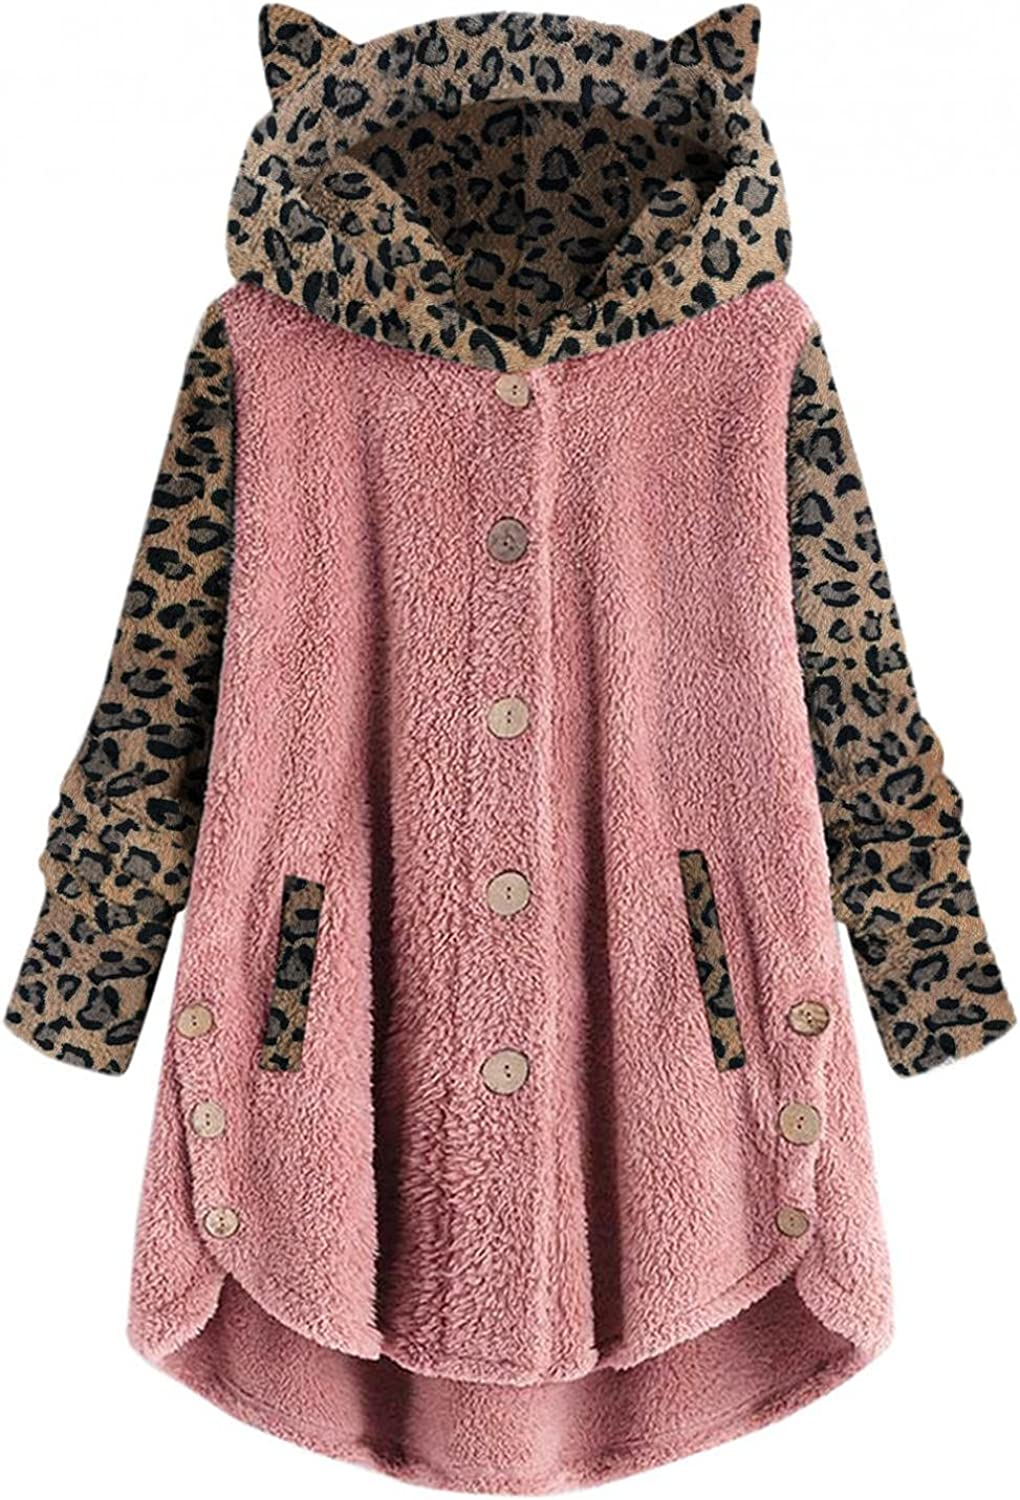 Women's Double-Sided Fleece Jacket Coat Cat Ear Cap Hooded Button Plus Size Patchworl Pullover Loose Trench Blouse